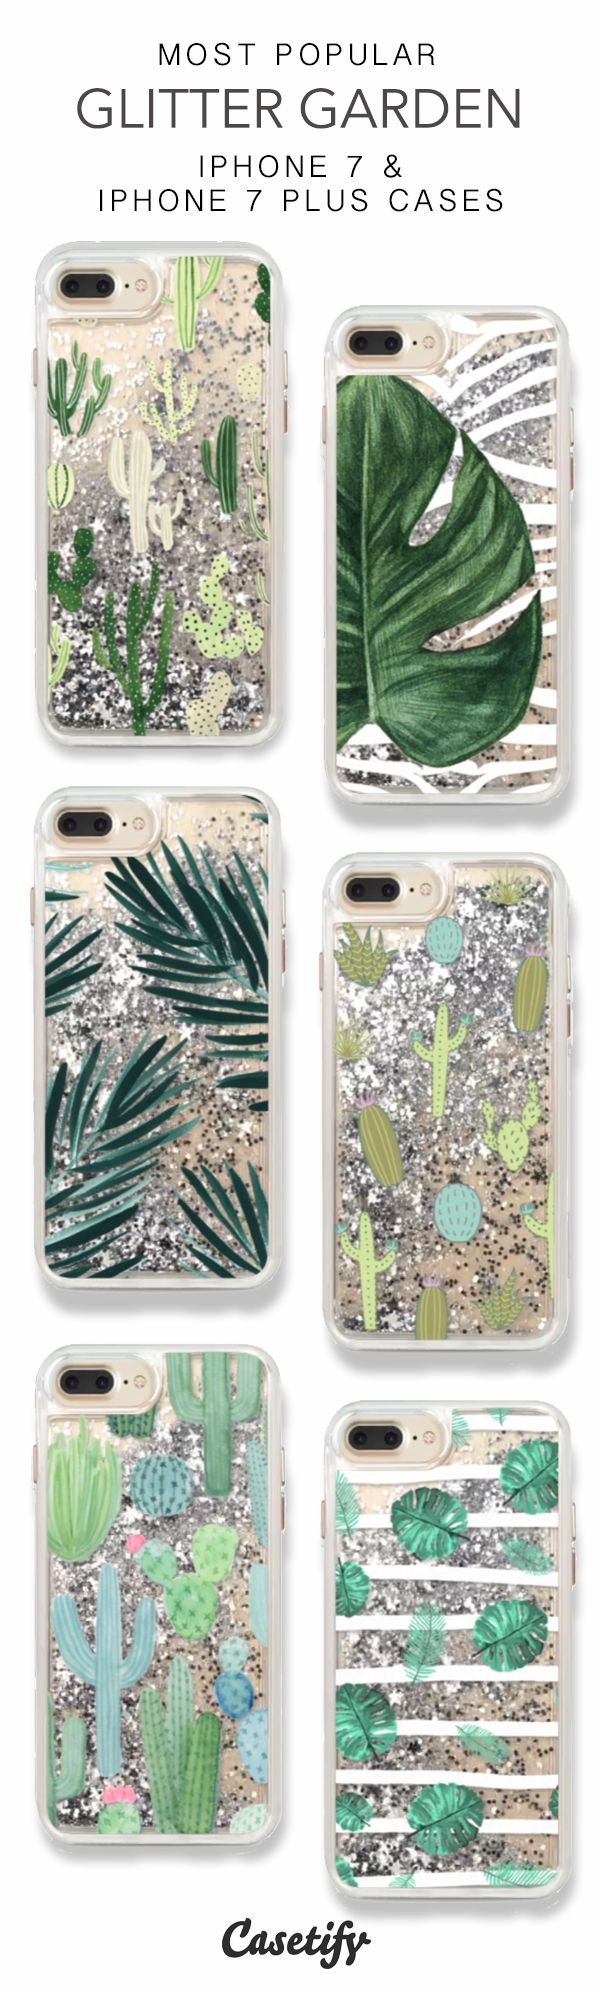 Most Popular Glitter Garden iPhone 7 Cases & iPhone 7 Plus Cases here > https://www.casetify.com/collections/iphone-7-glitter-cases#/ http://amzn.to/2spd3Ru